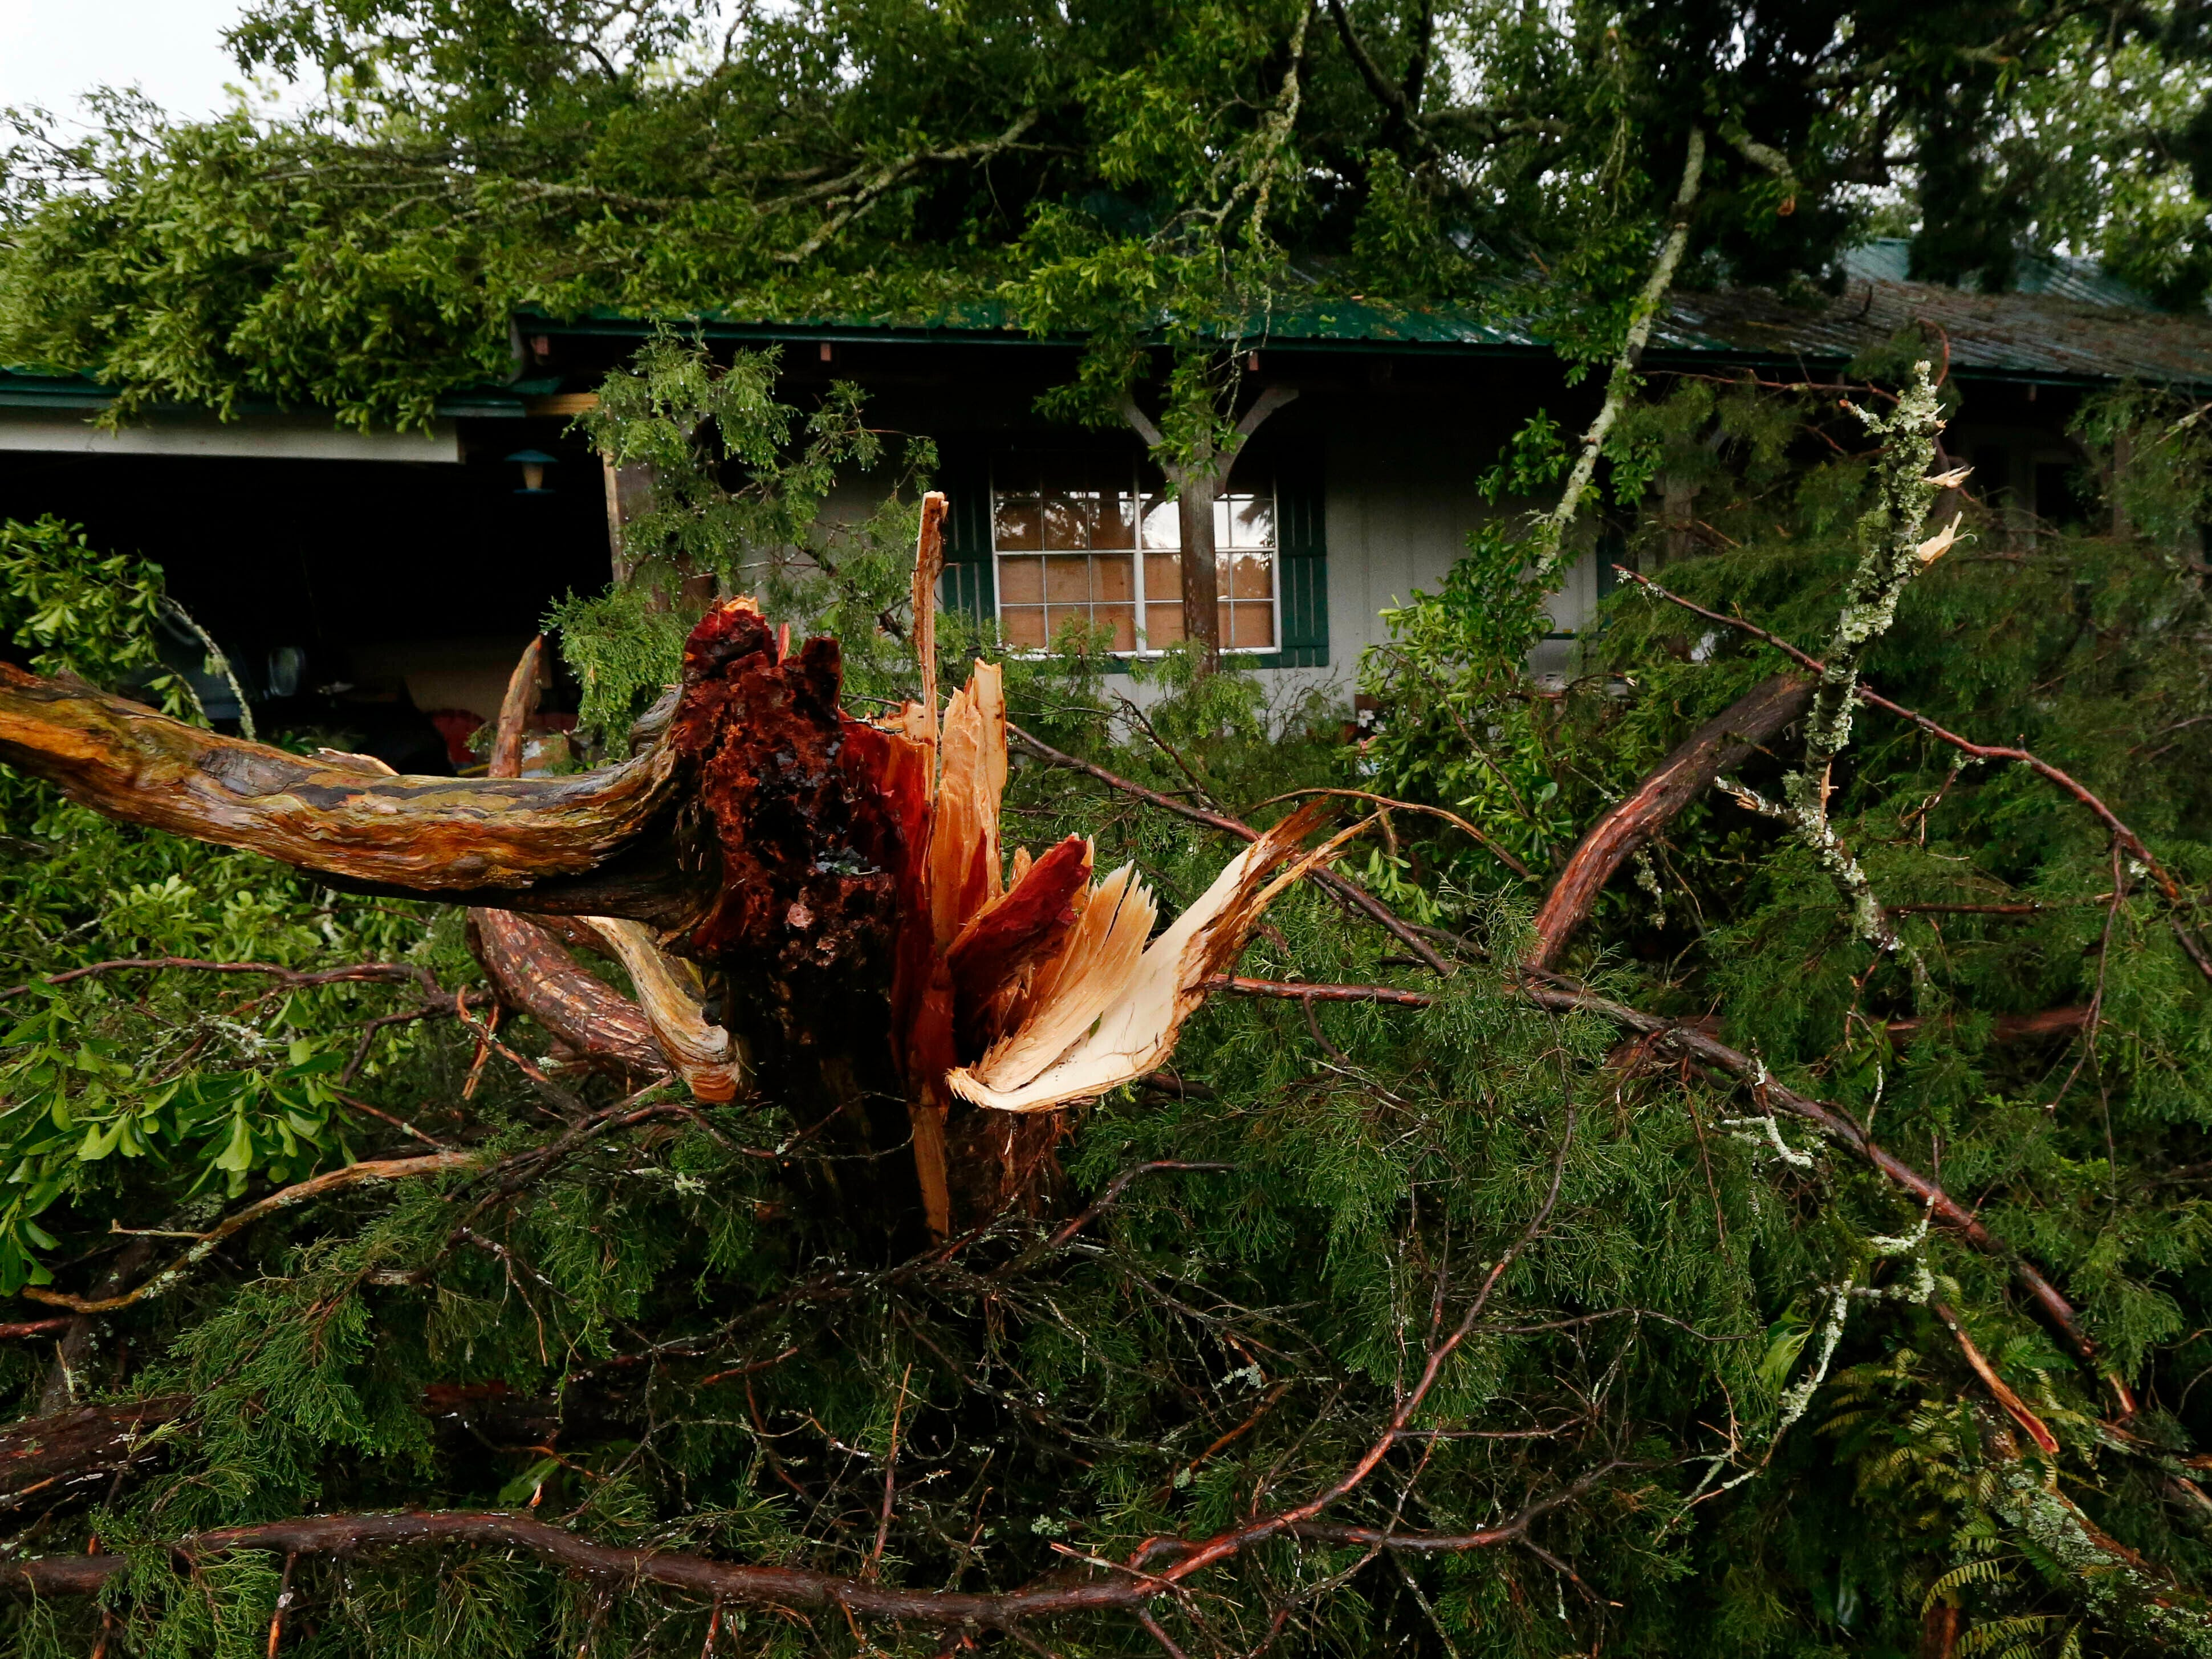 Ripped tree branches litter a Learned, Miss., home, following severe weather that hit the small community, Thursday, April 18, 2019. Several homes were damaged by fallen trees in the tree lined community. Strong storms again roared across the South on Thursday, topping trees and leaving more than 100,000 people without power across Mississippi, Louisiana and Texas.